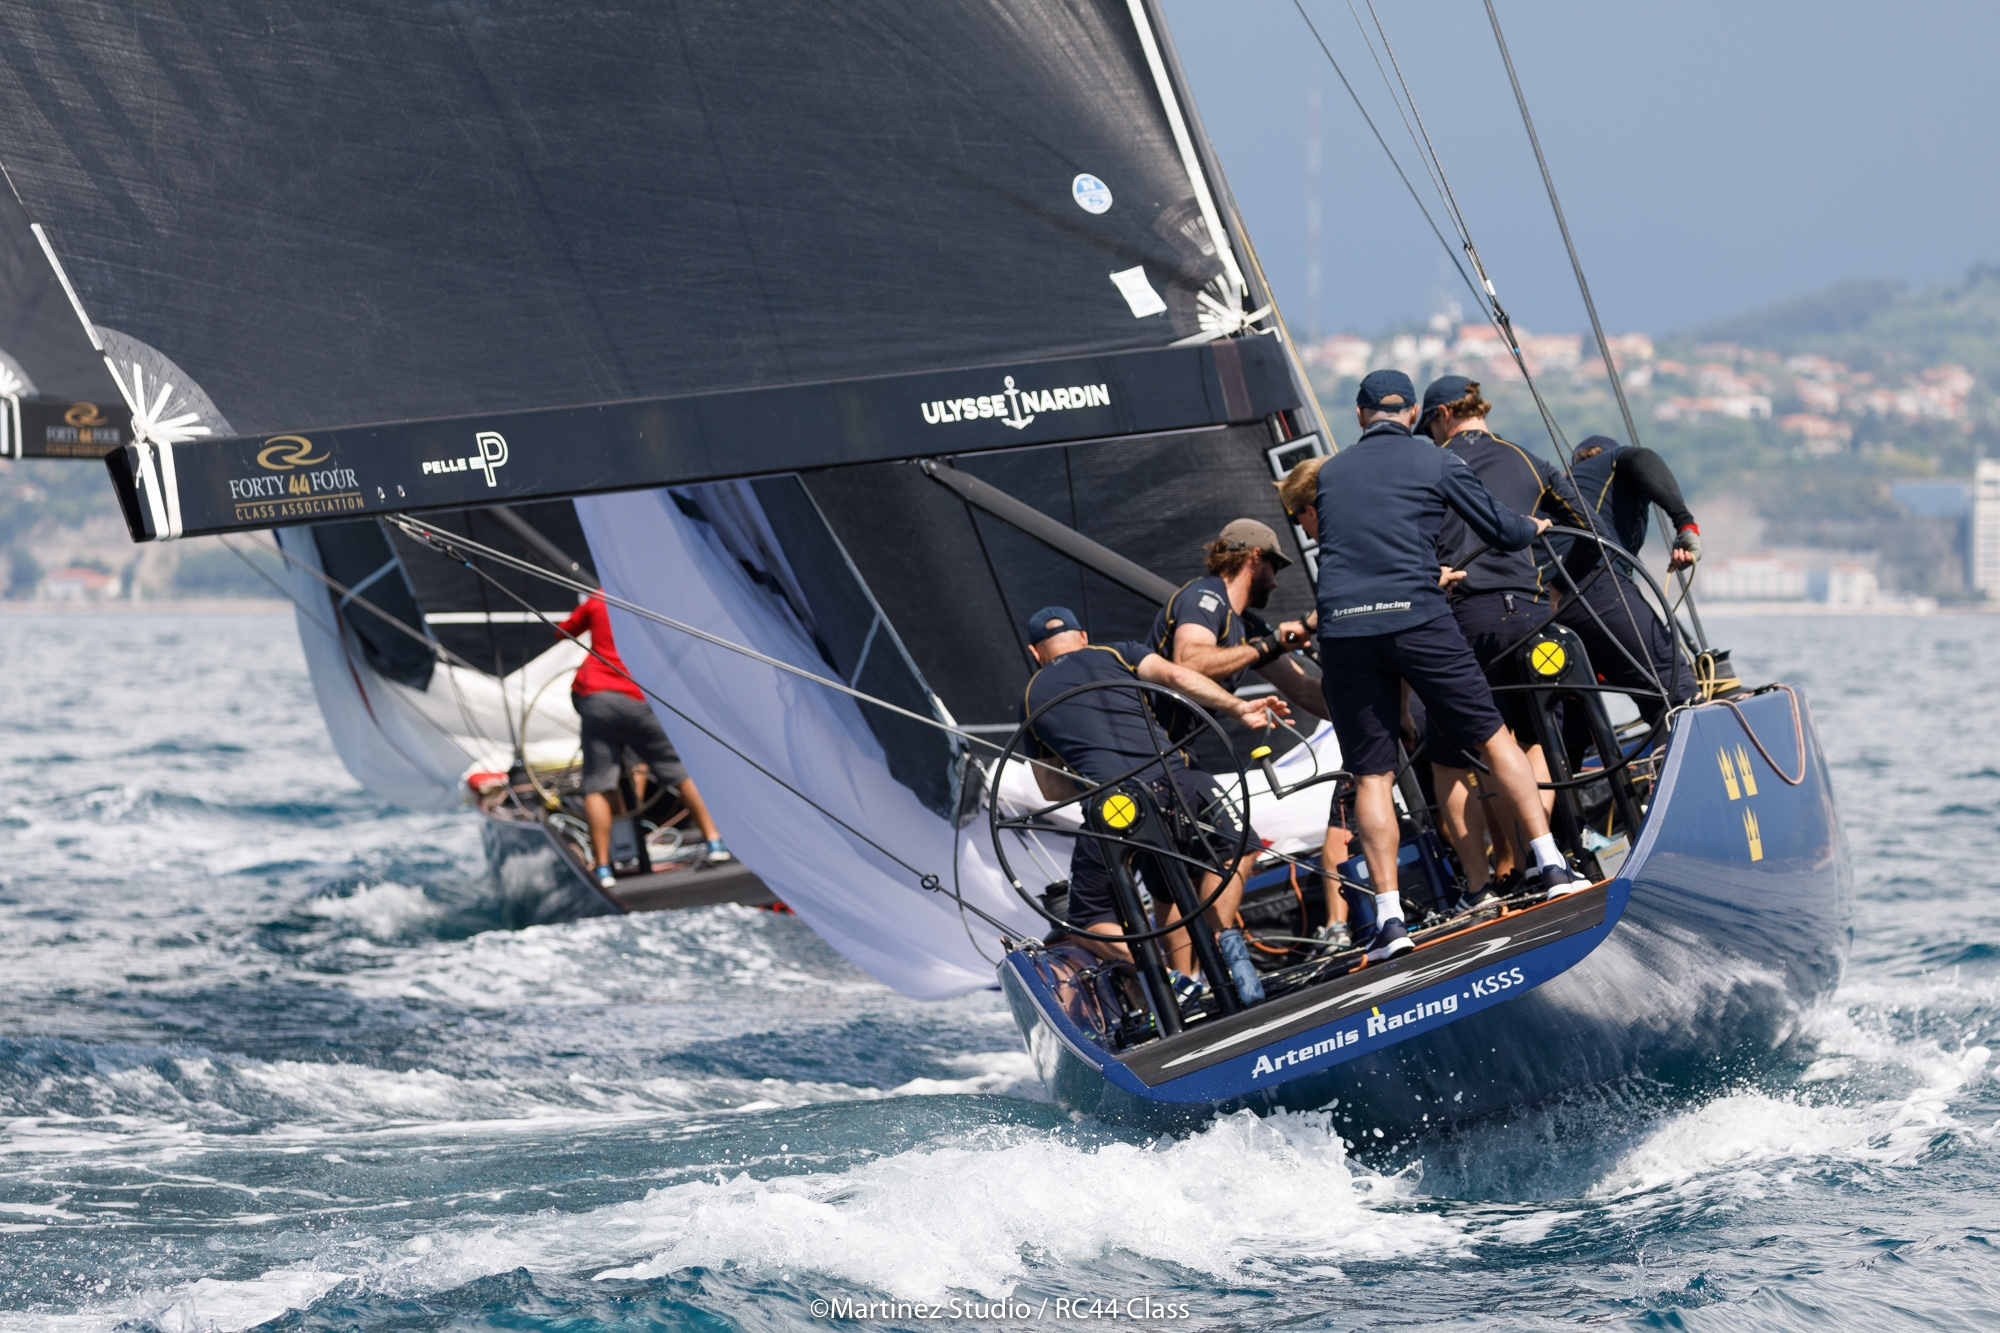 Nathan Outteridge at the helm of Artemis Racing. Photo Martinez Studio.